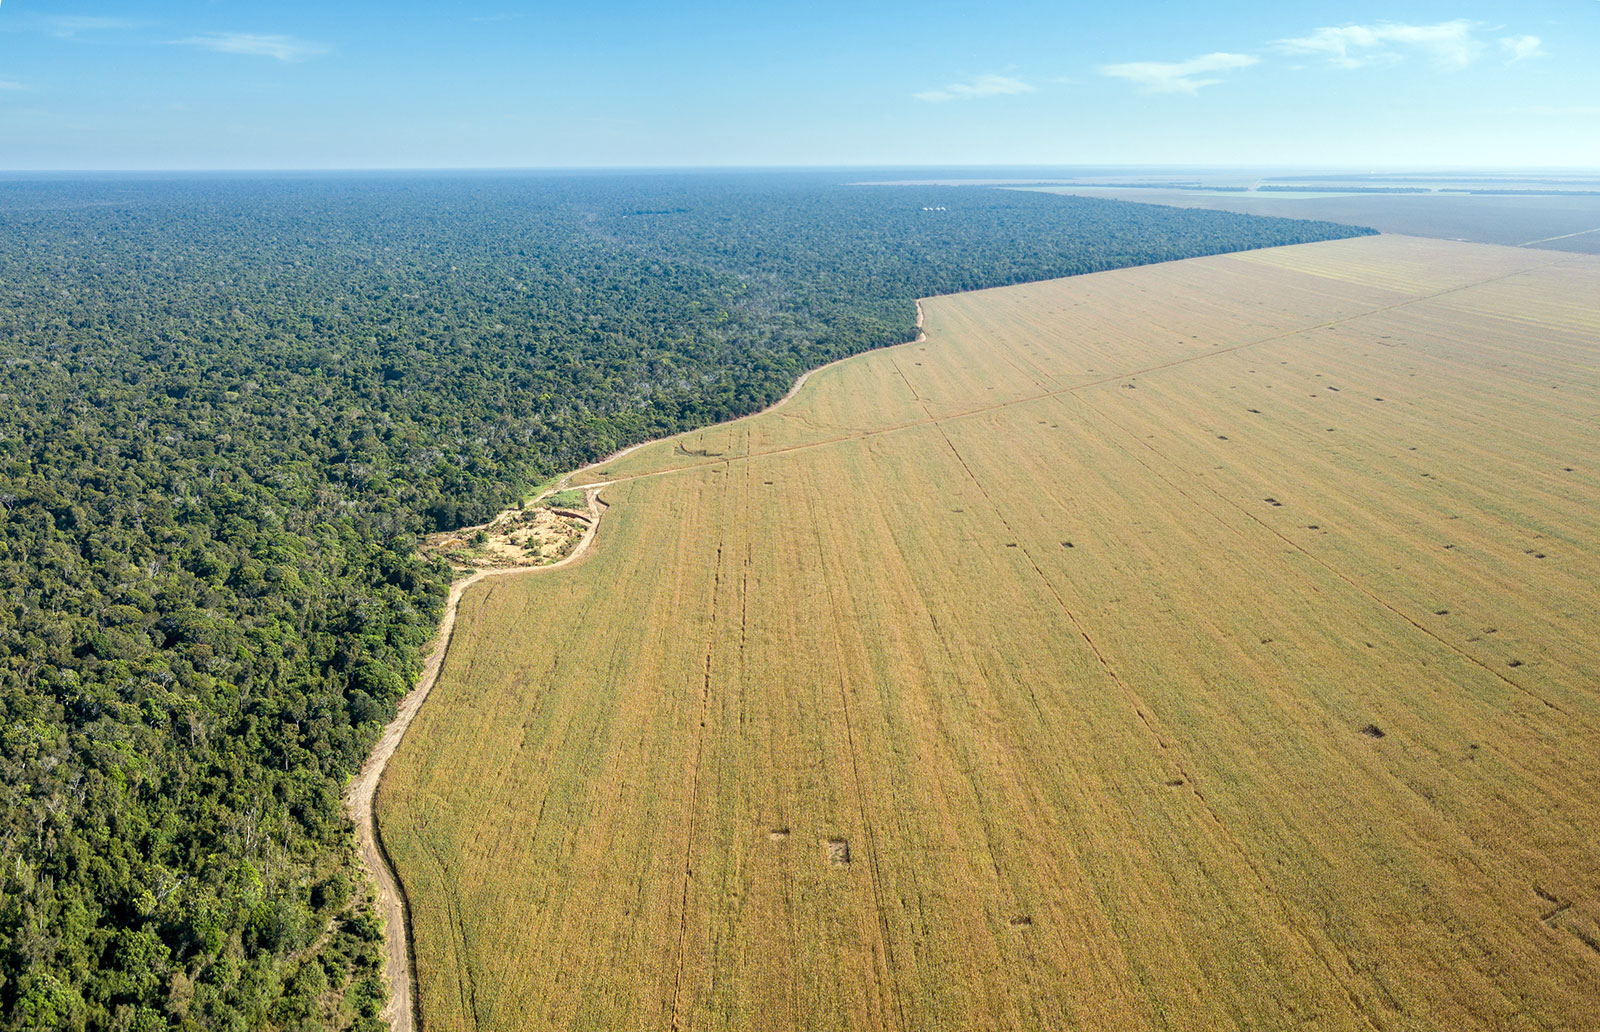 Aerial view of deforestation next to the Xingu indigenous territory in the Amazon rainforest, Brazil